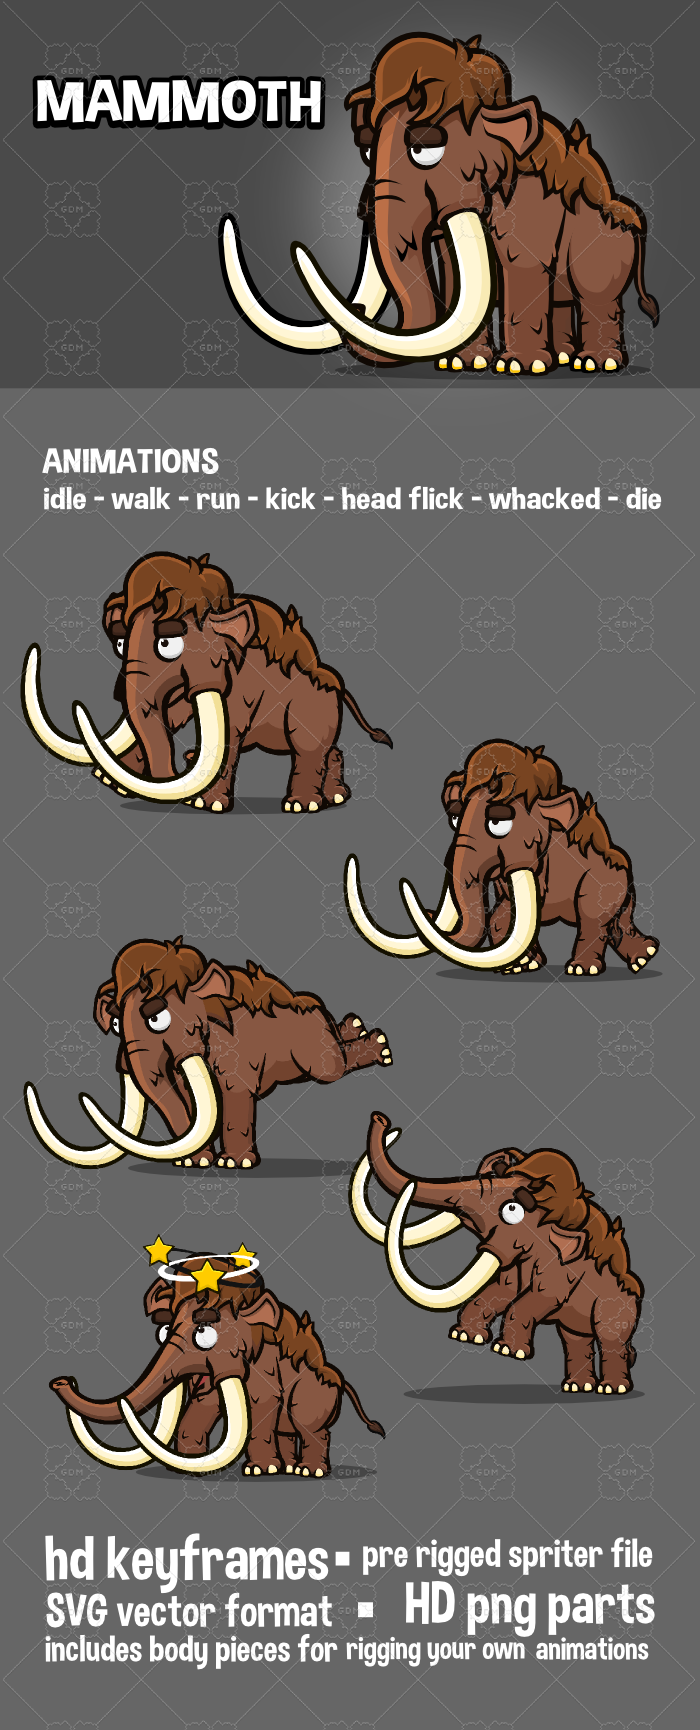 Animated mammoth 2d game sprite